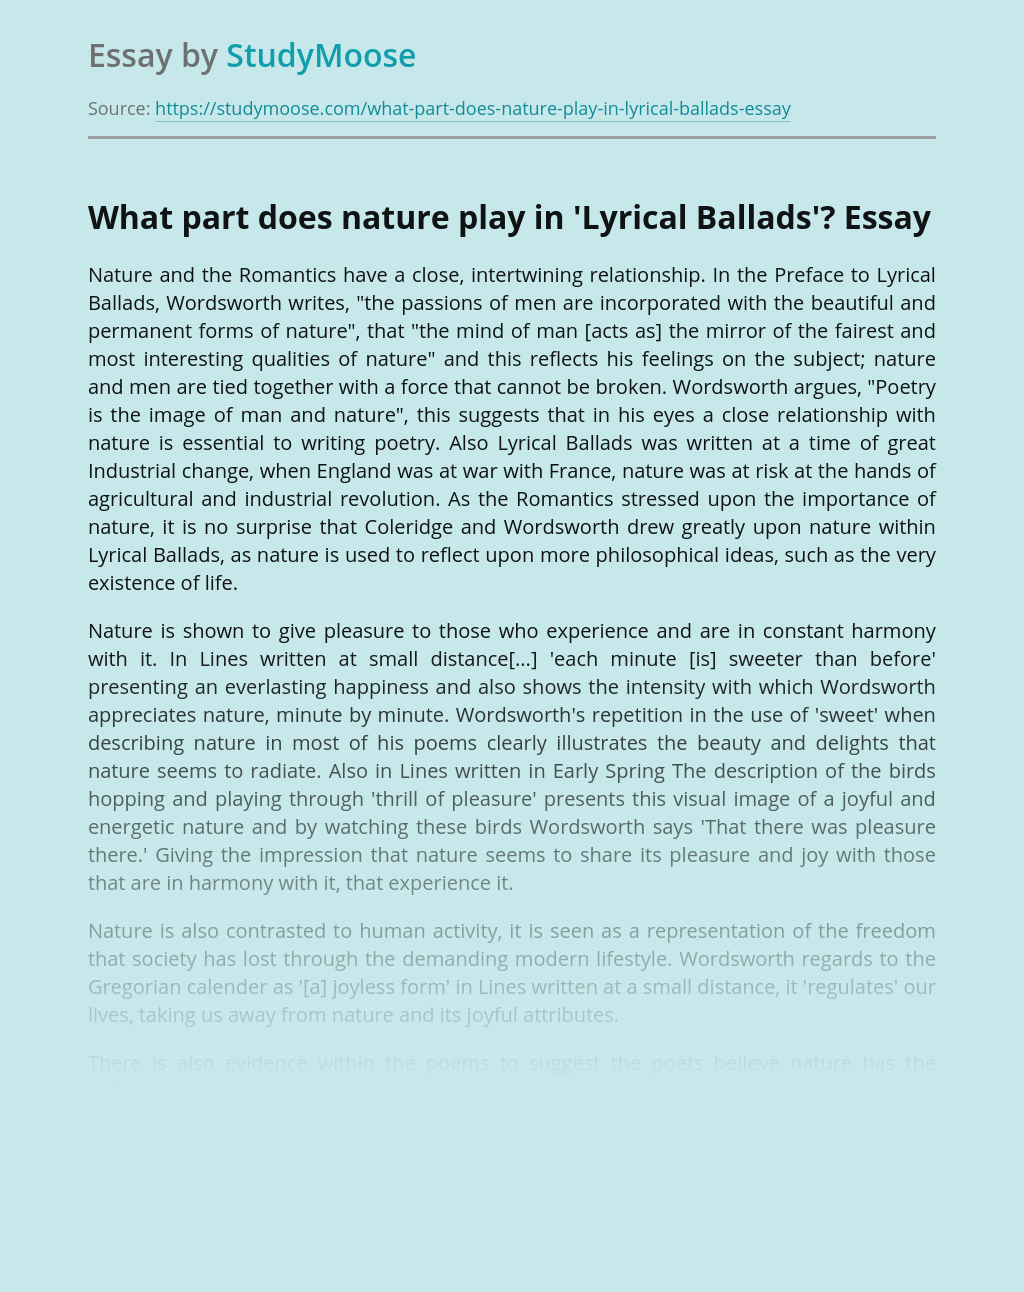 What part does nature play in'Lyrical Ballads'?